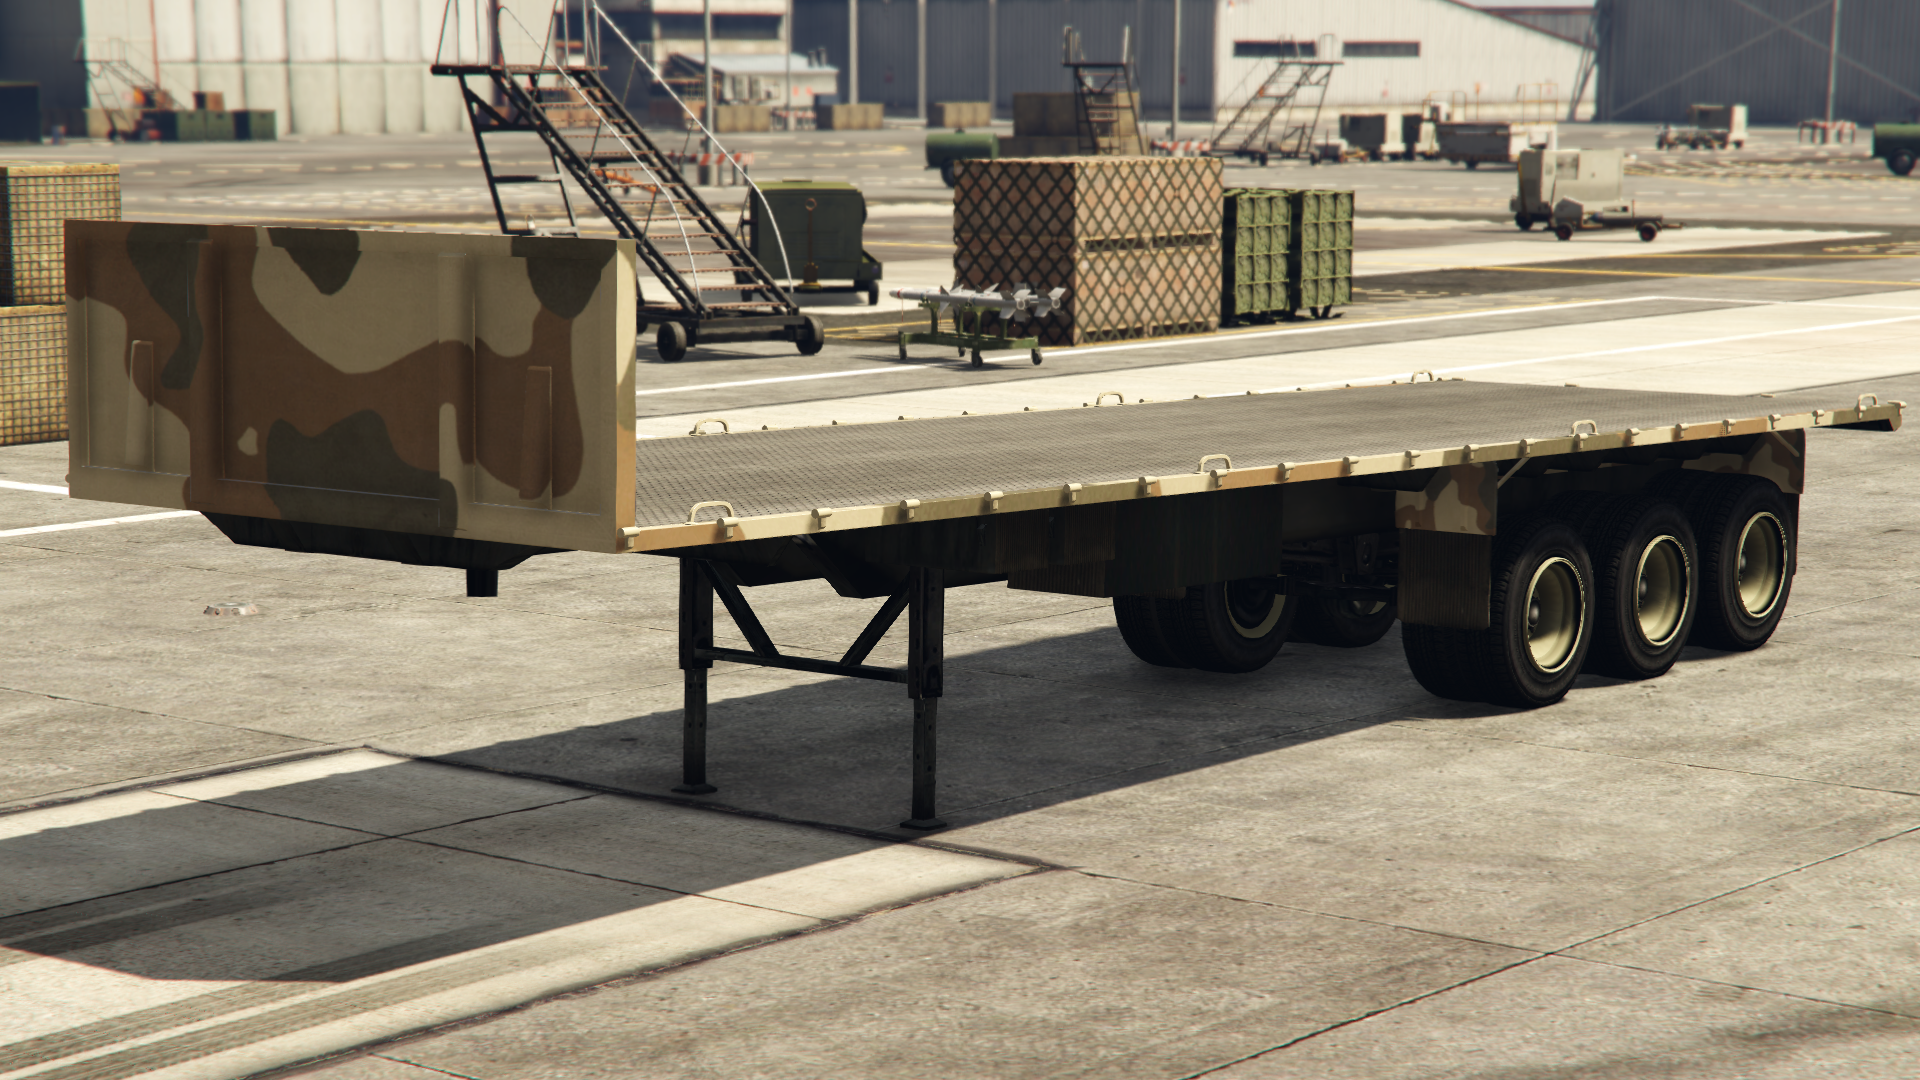 army trailer gta wiki fandom powered by wikia. Black Bedroom Furniture Sets. Home Design Ideas